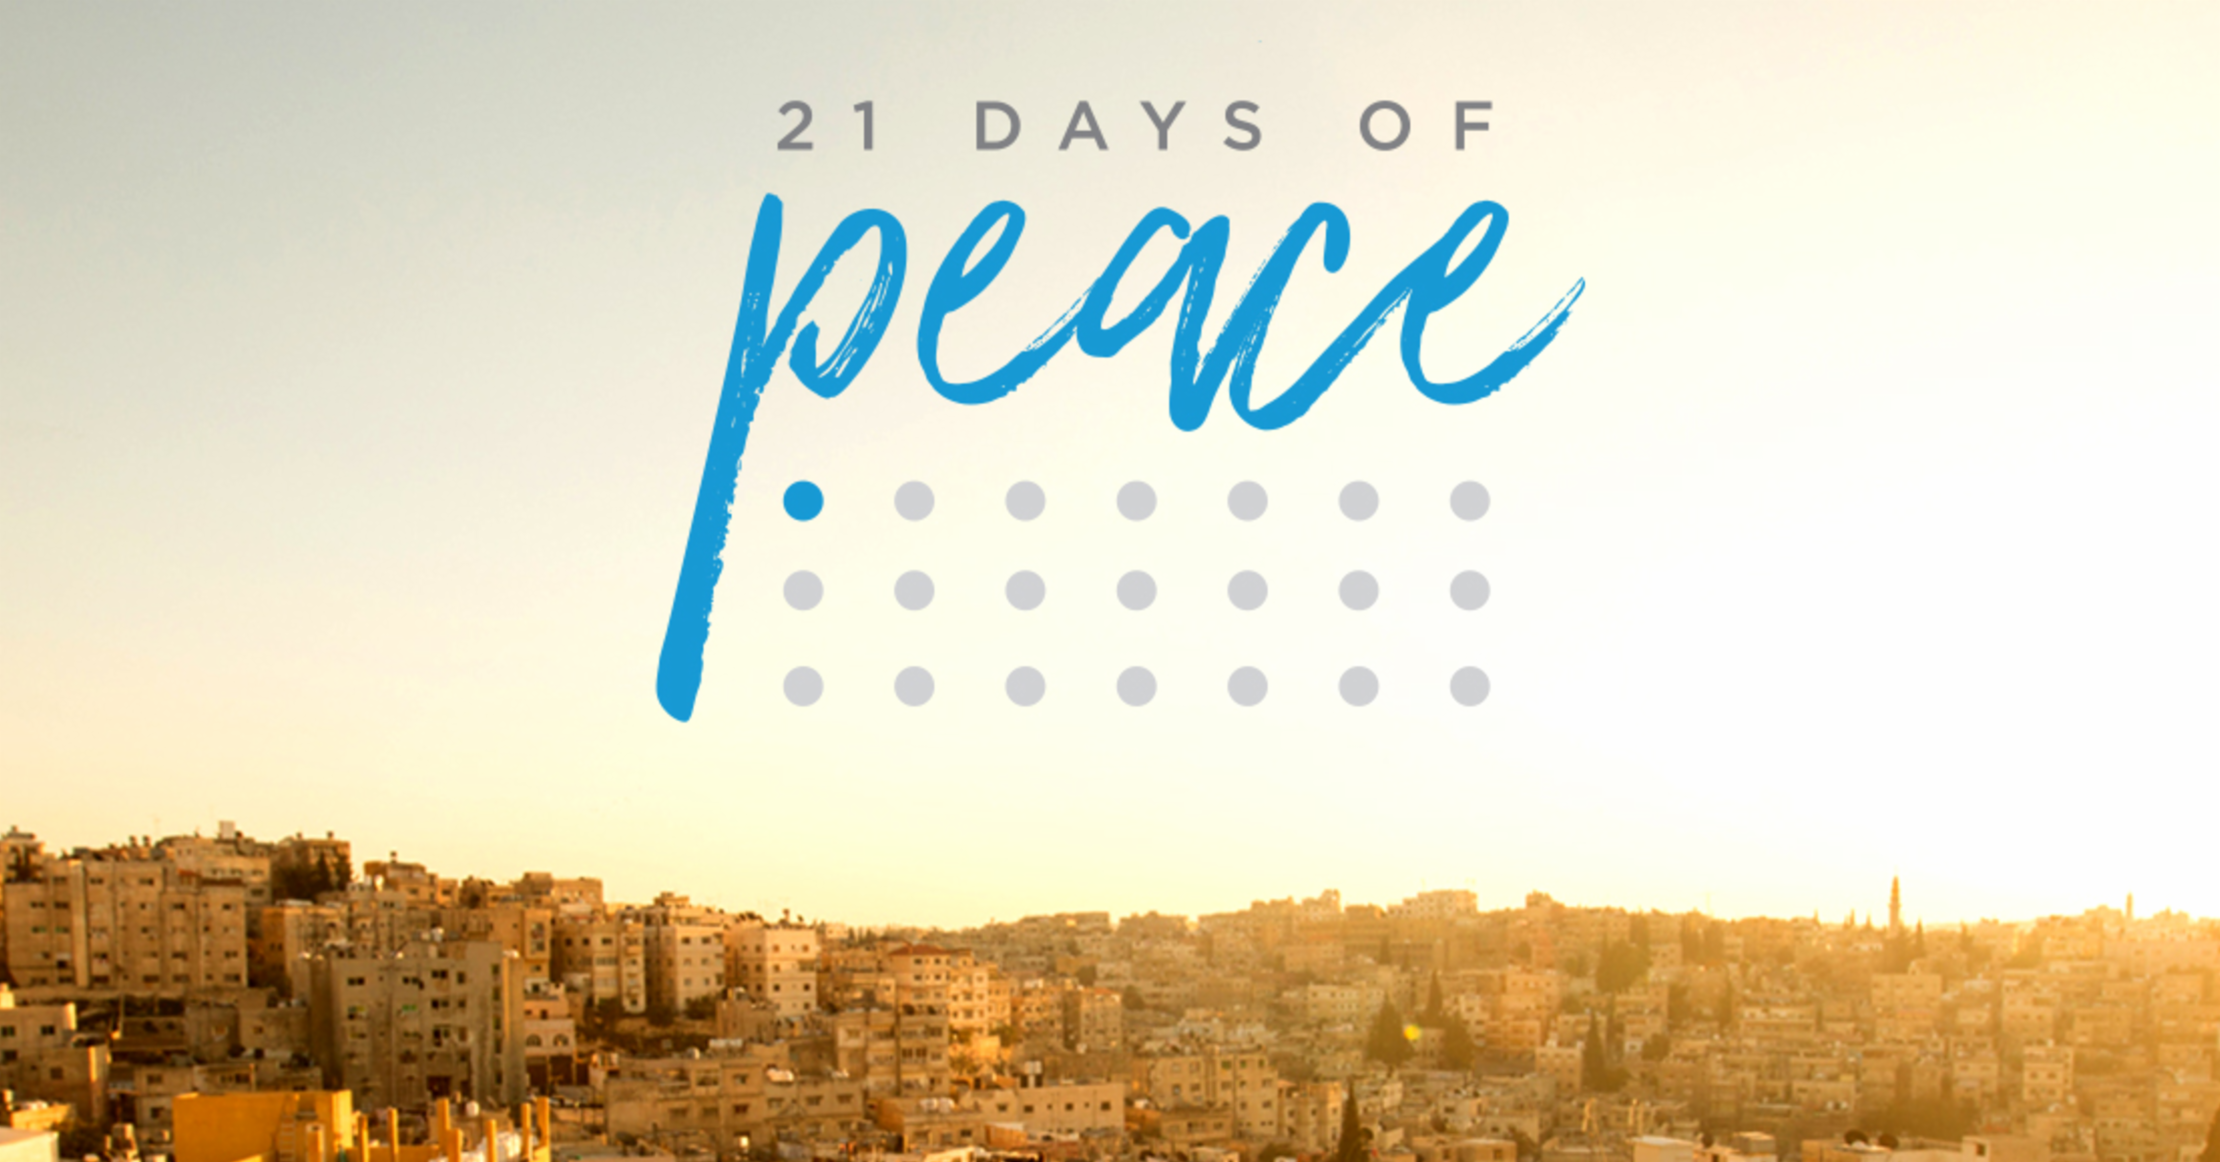 facebook_21_days_peace